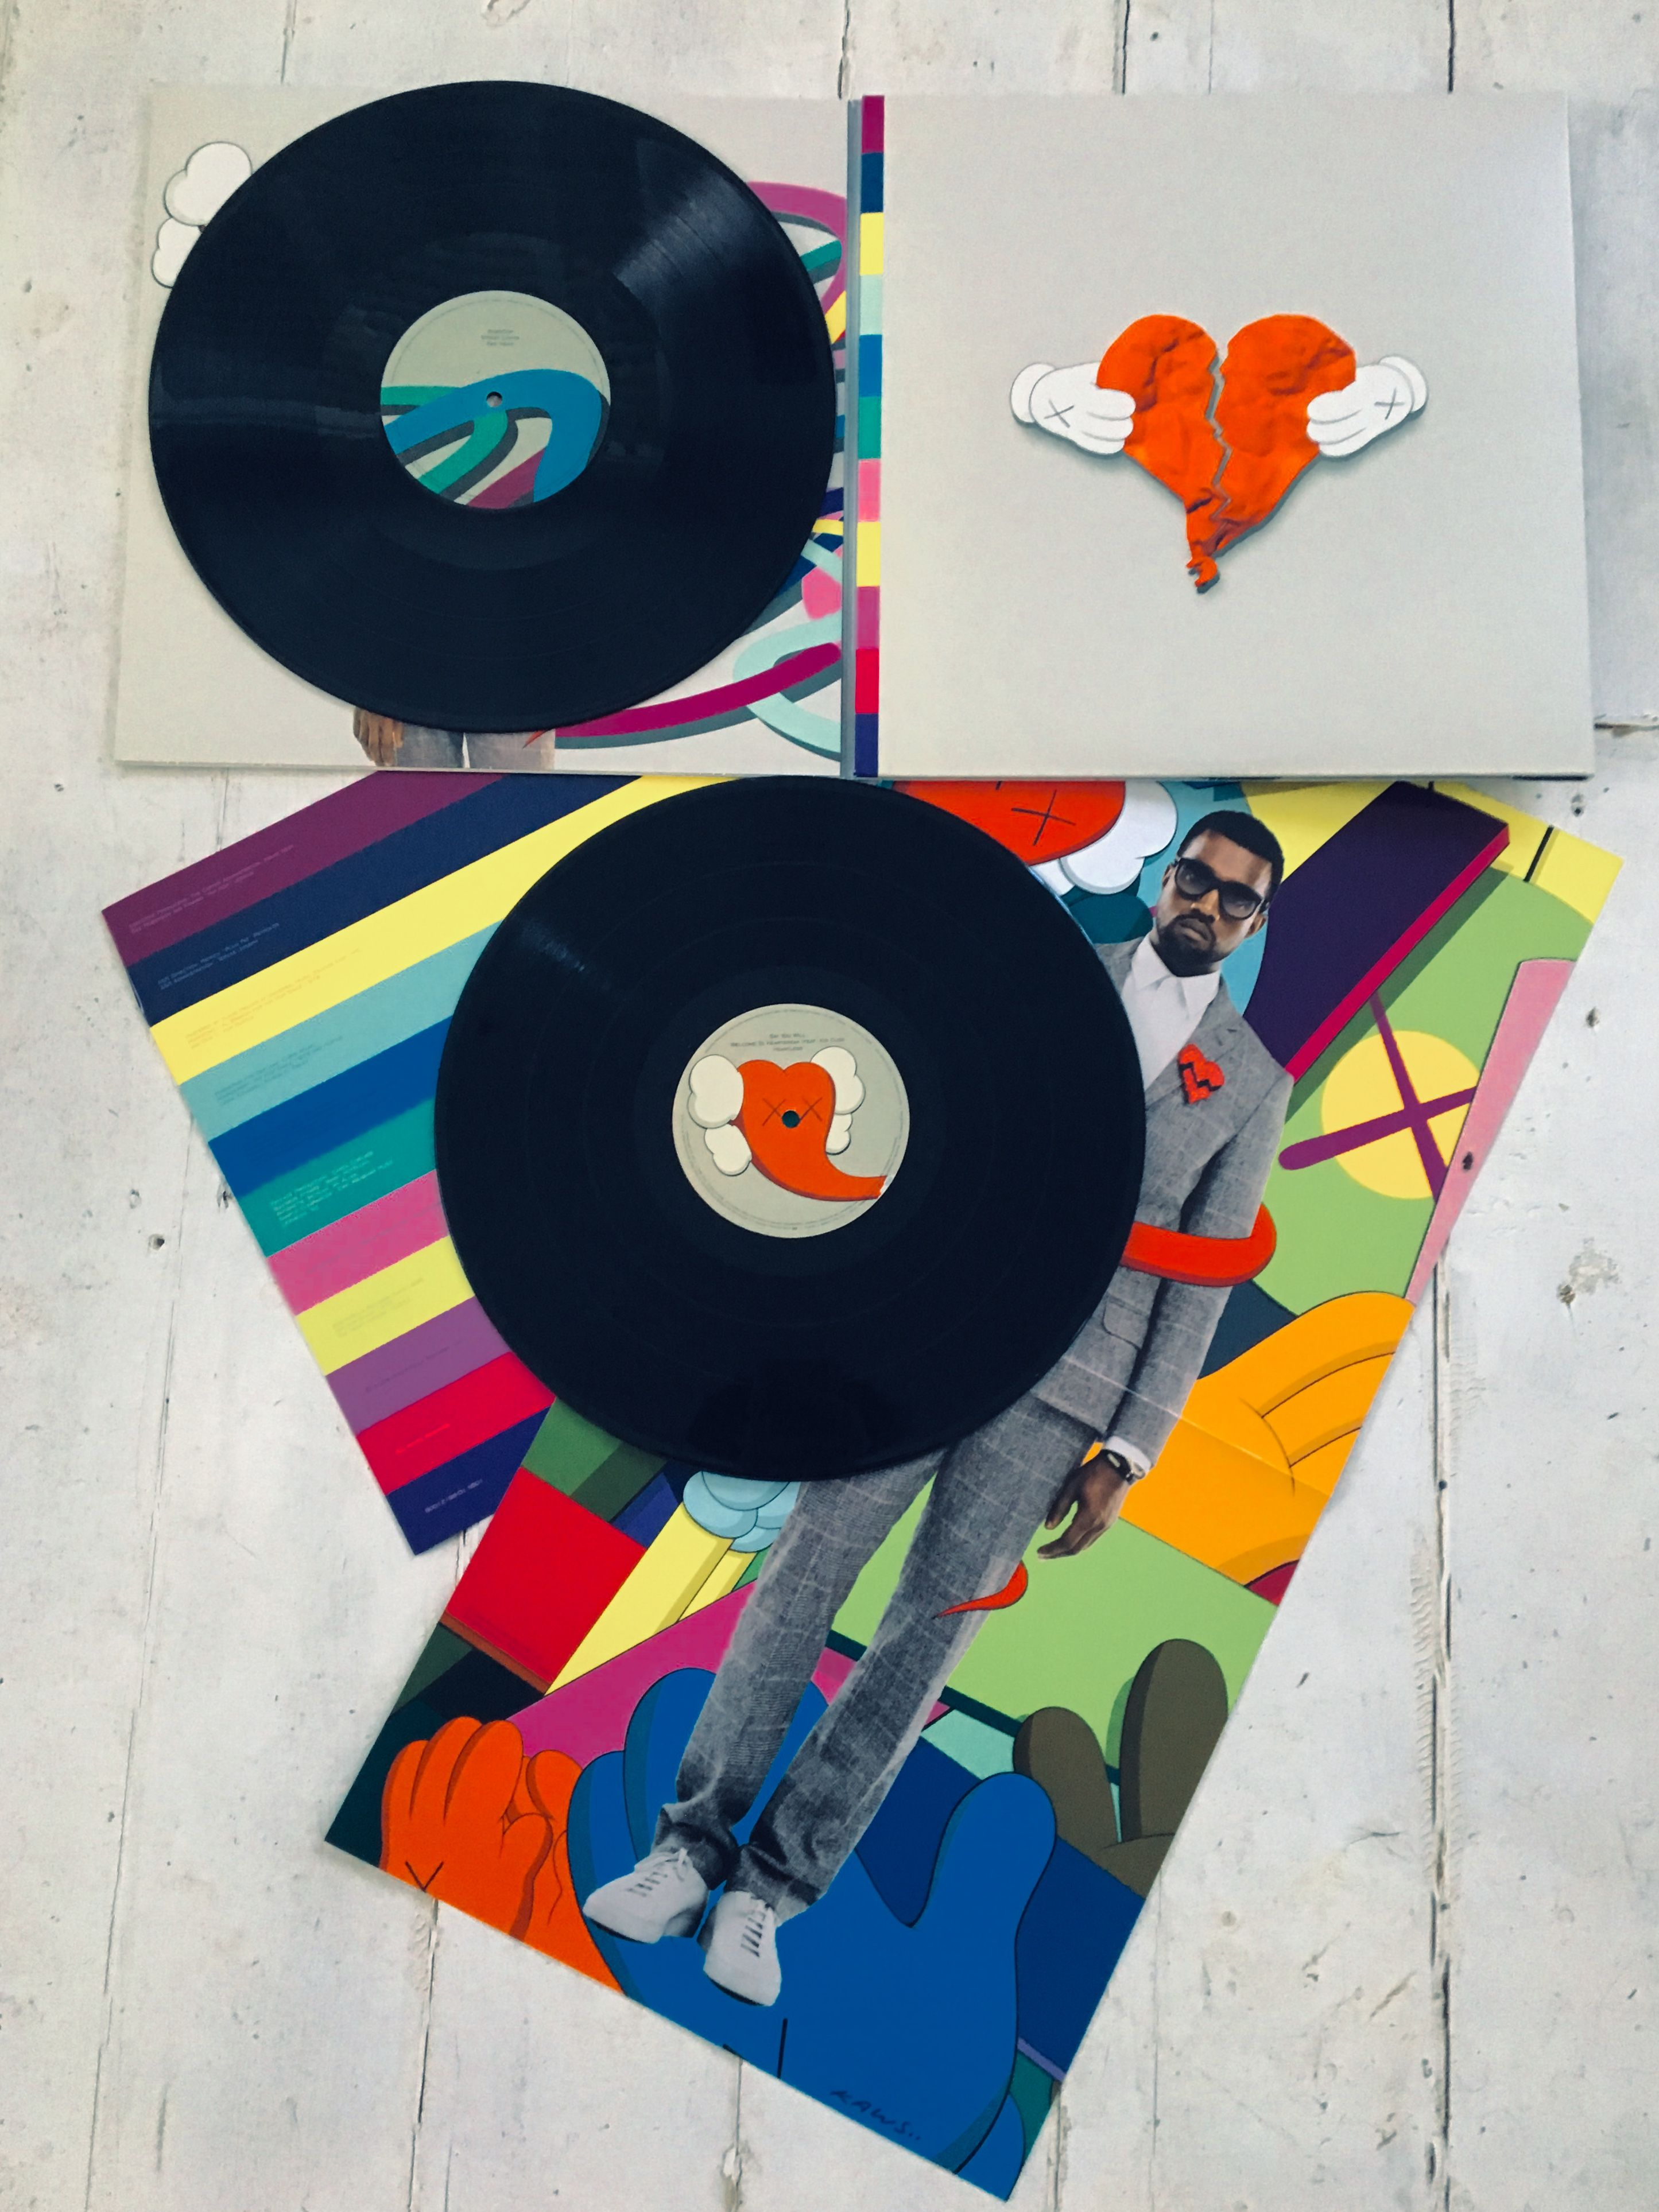 Throwback Kanye West S 808s And Heartbreak Icy Laments That Breathed Warmth Into Hip Hop In 2020 Throwback Music Blog 808s Heartbreak